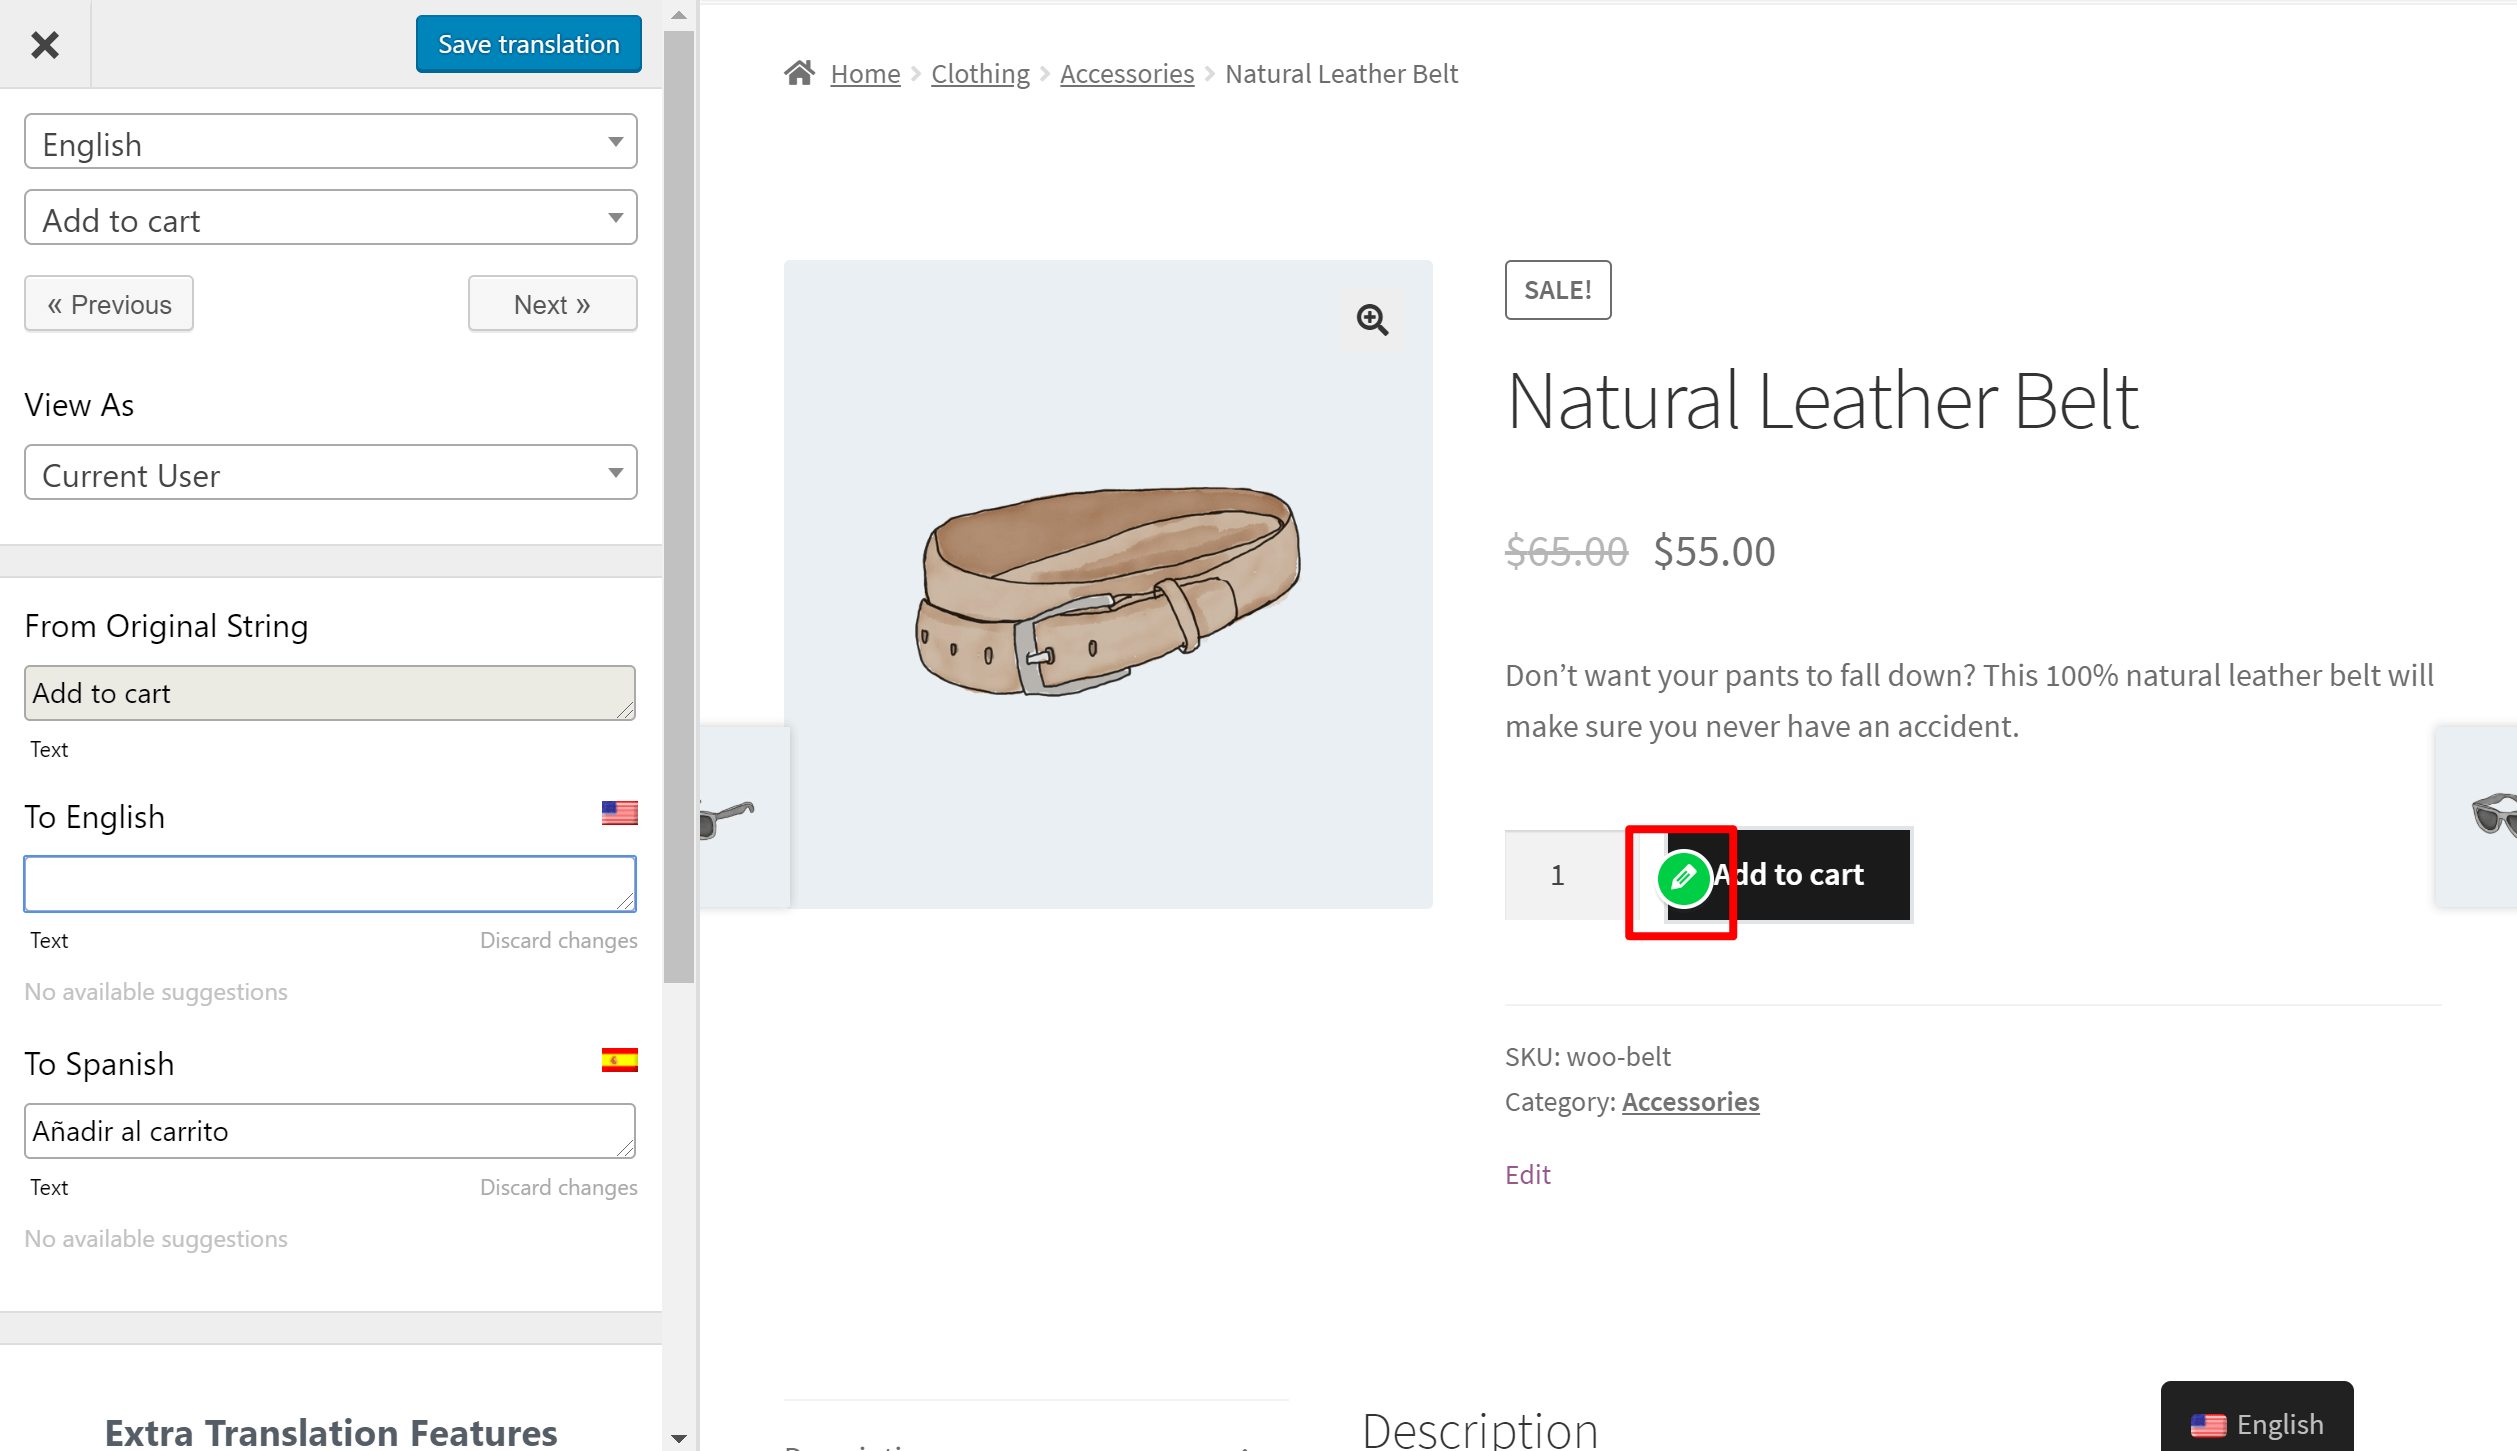 Editing the add to cart button in WooCommerce